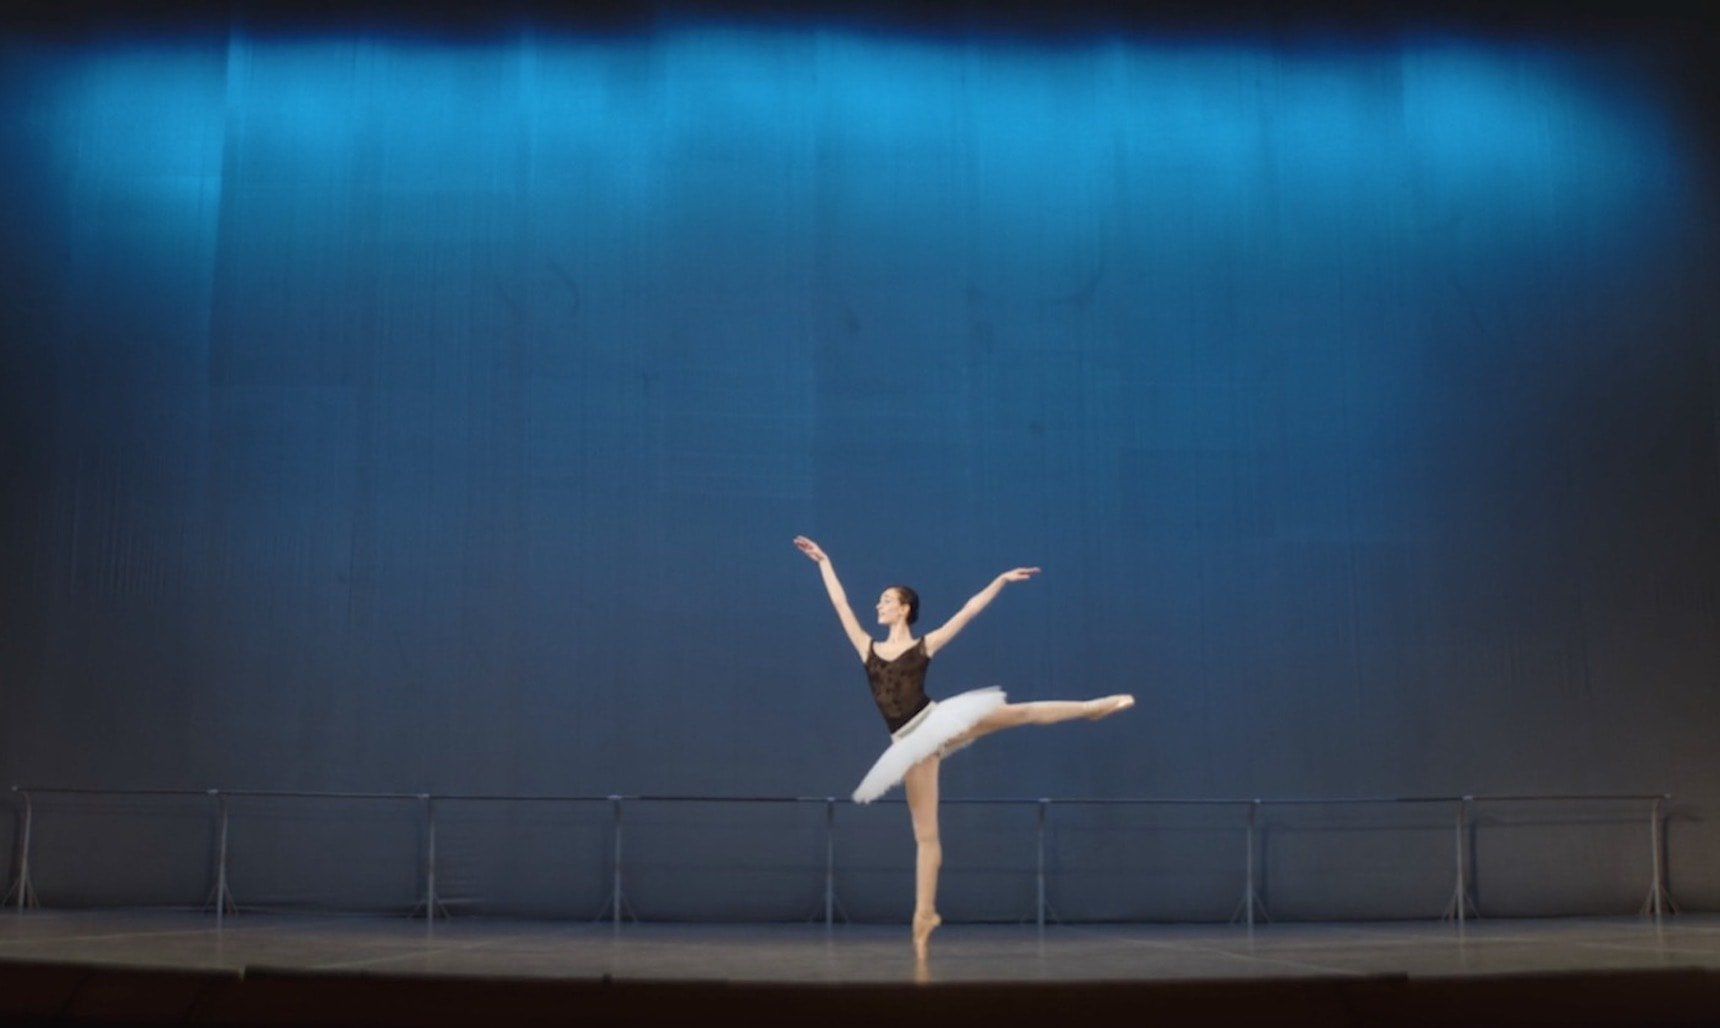 A Russian ballet female dancer rehearsing on a stage